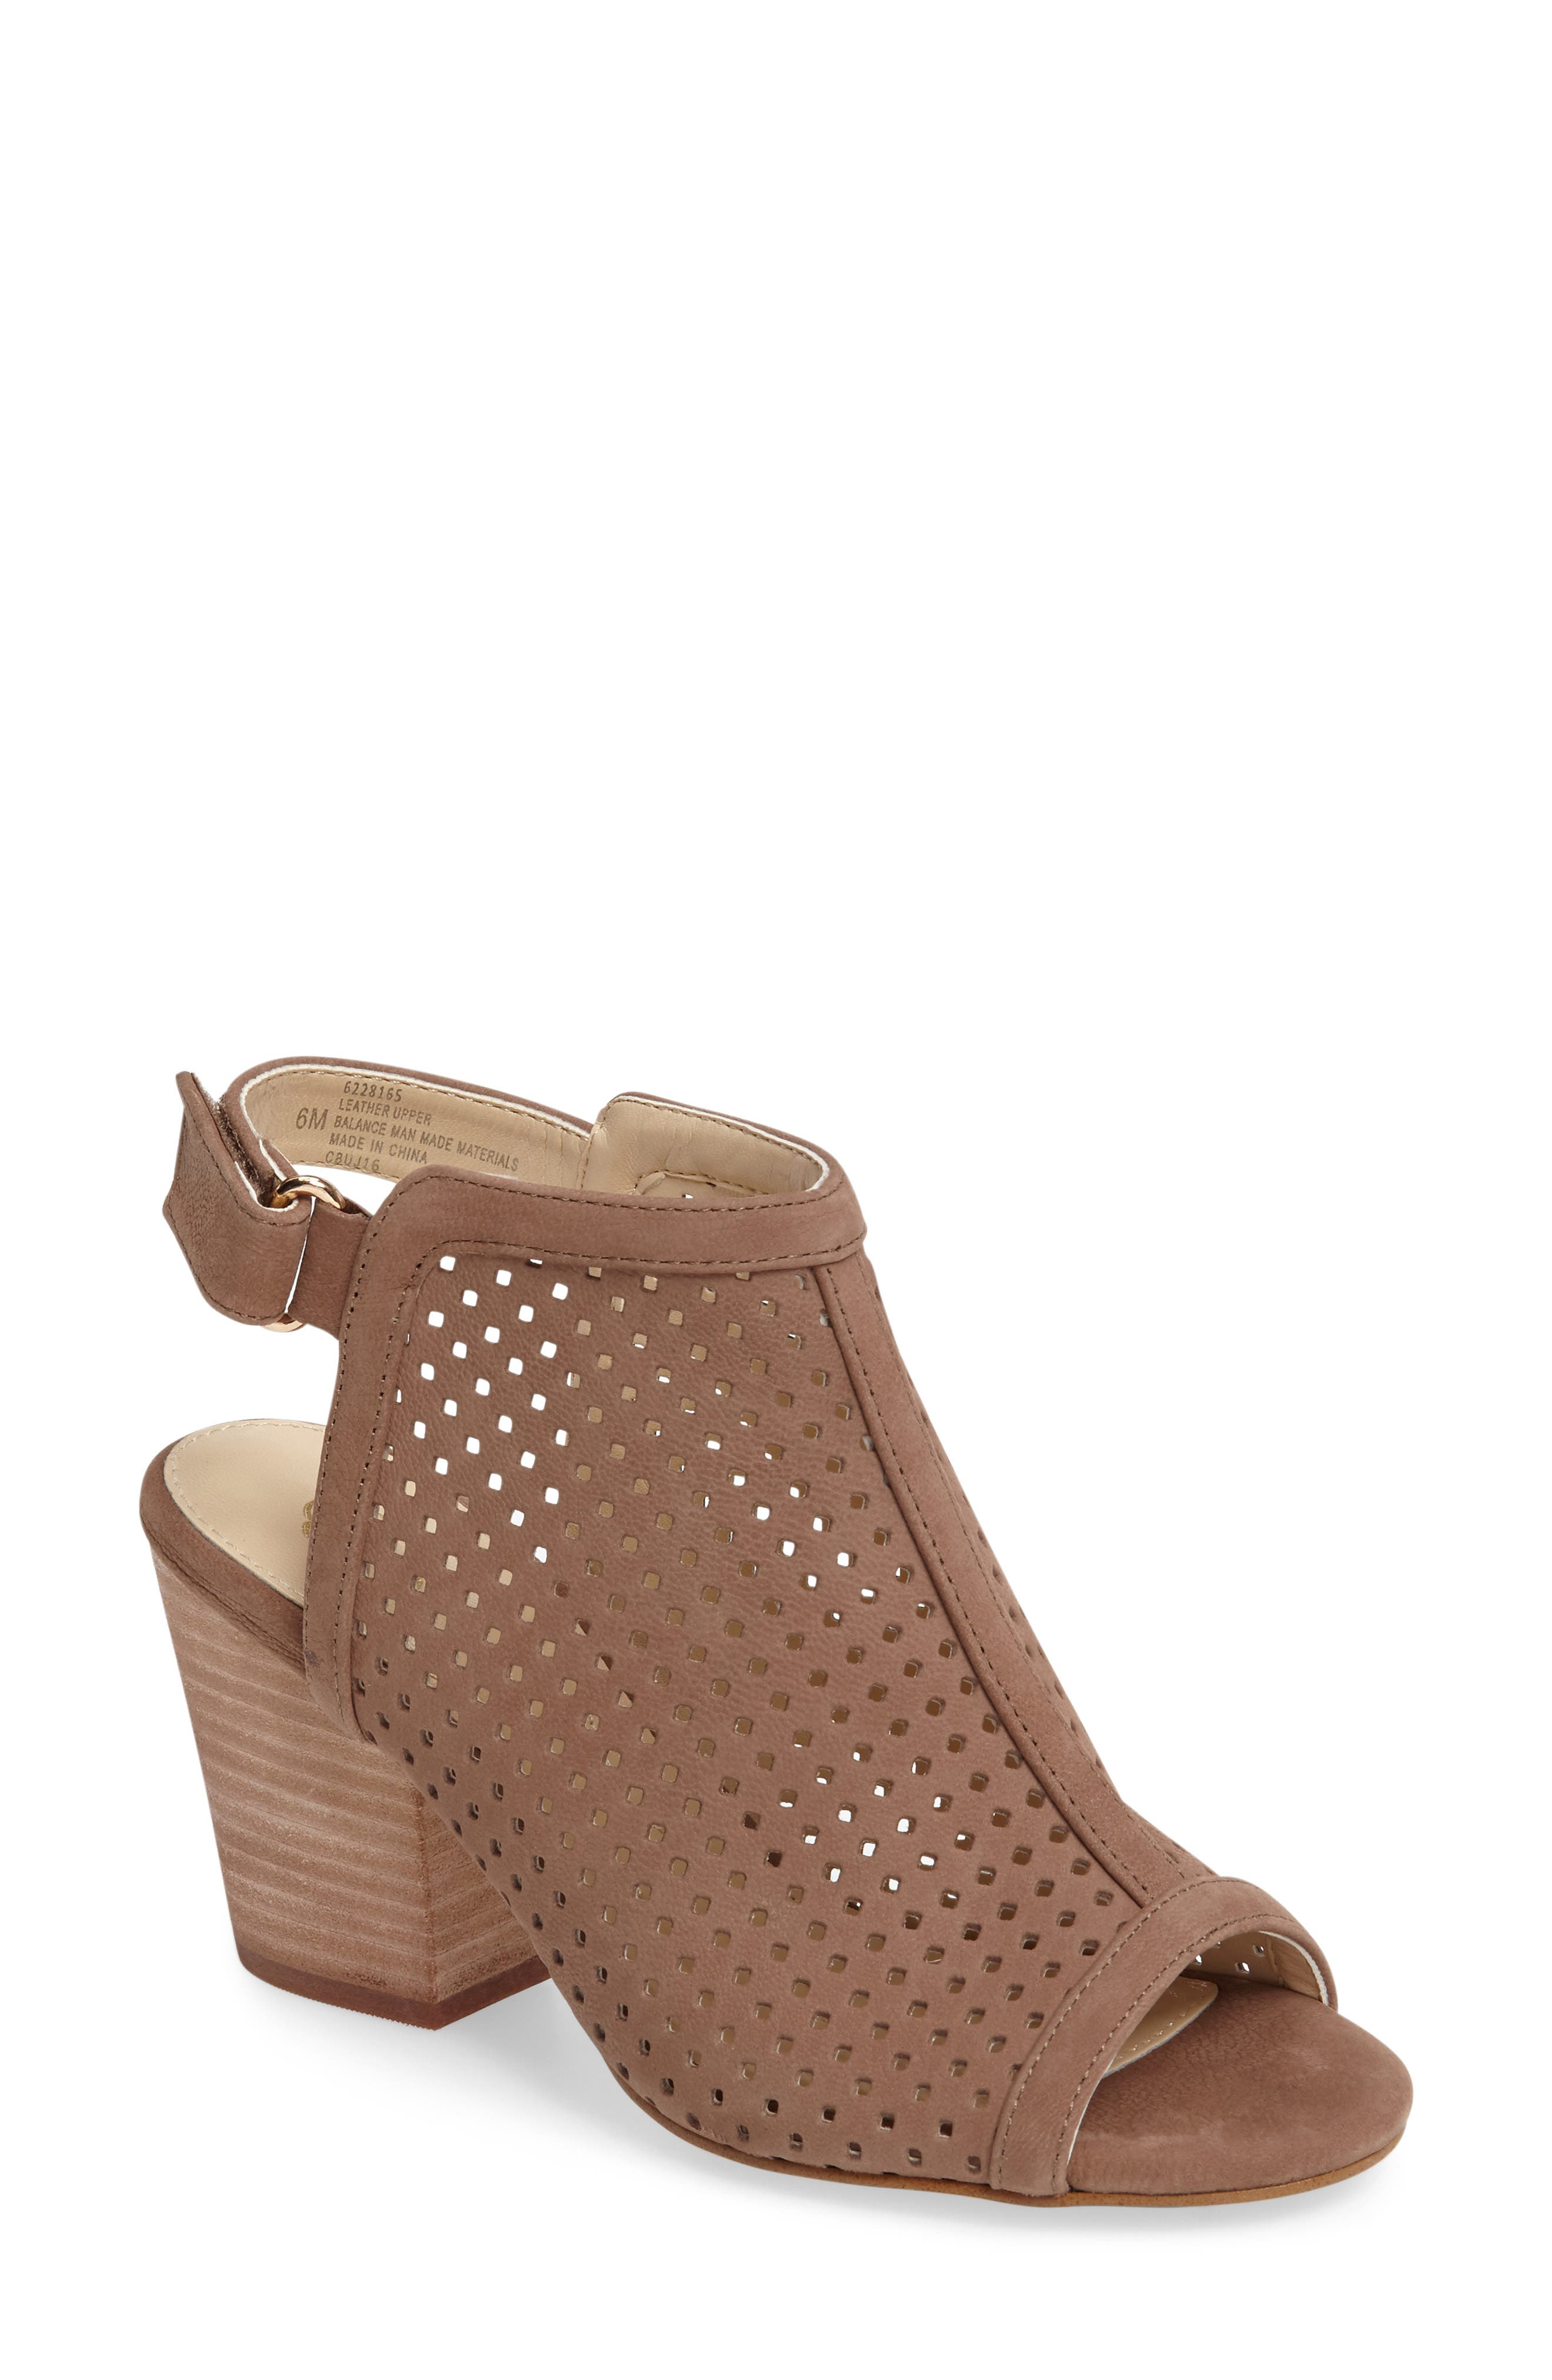 'Lora' Perforated Open-Toe Bootie Sandal,                             Main thumbnail 1, color,                             BARLEY LEATHER